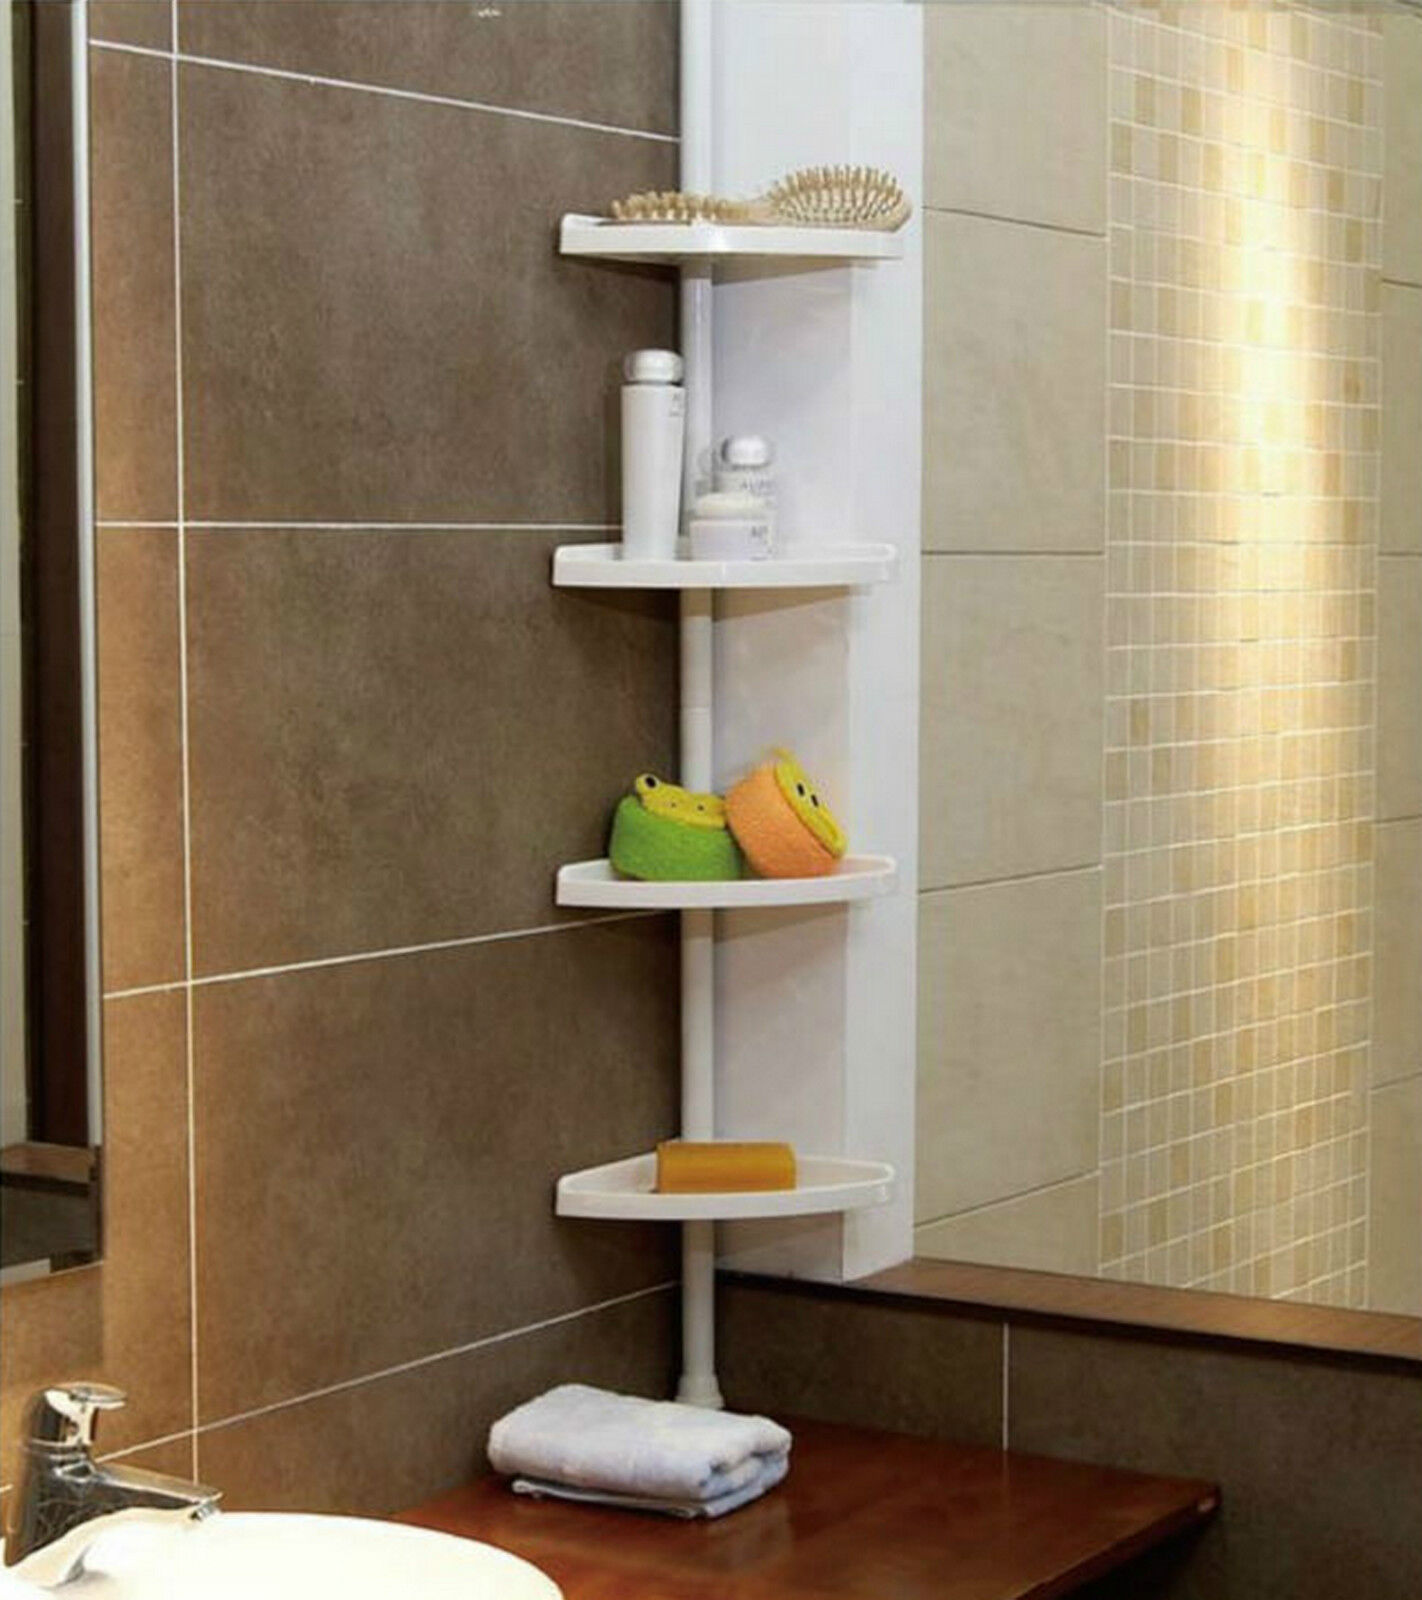 adjustable telescopic corner shower bathroom shelf organiser caddy